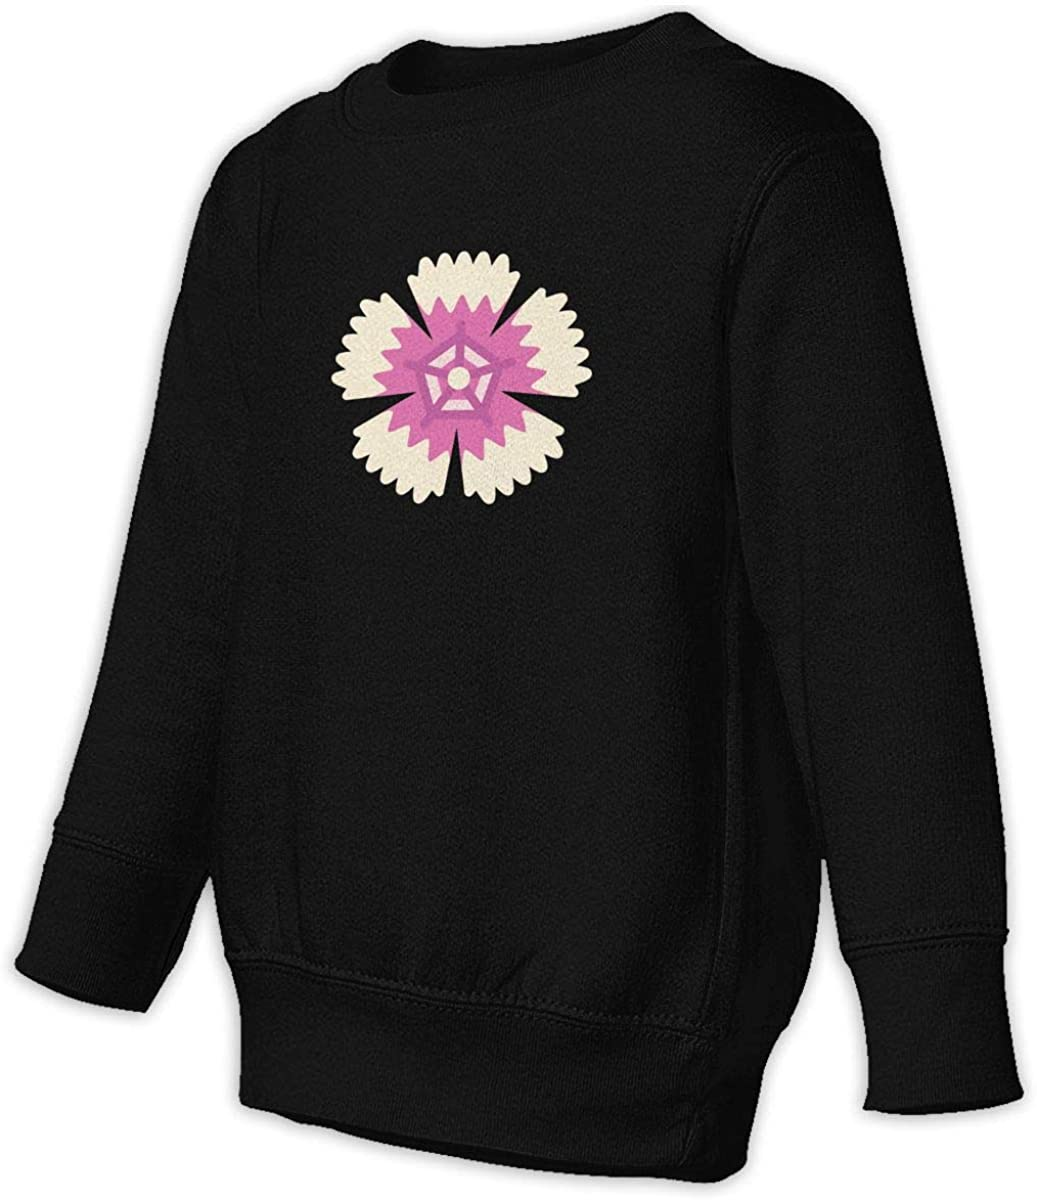 Fleece Pull Over Sweatshirt for Boys Girls Kids Youth Dianthus Unisex Toddler Hoodies